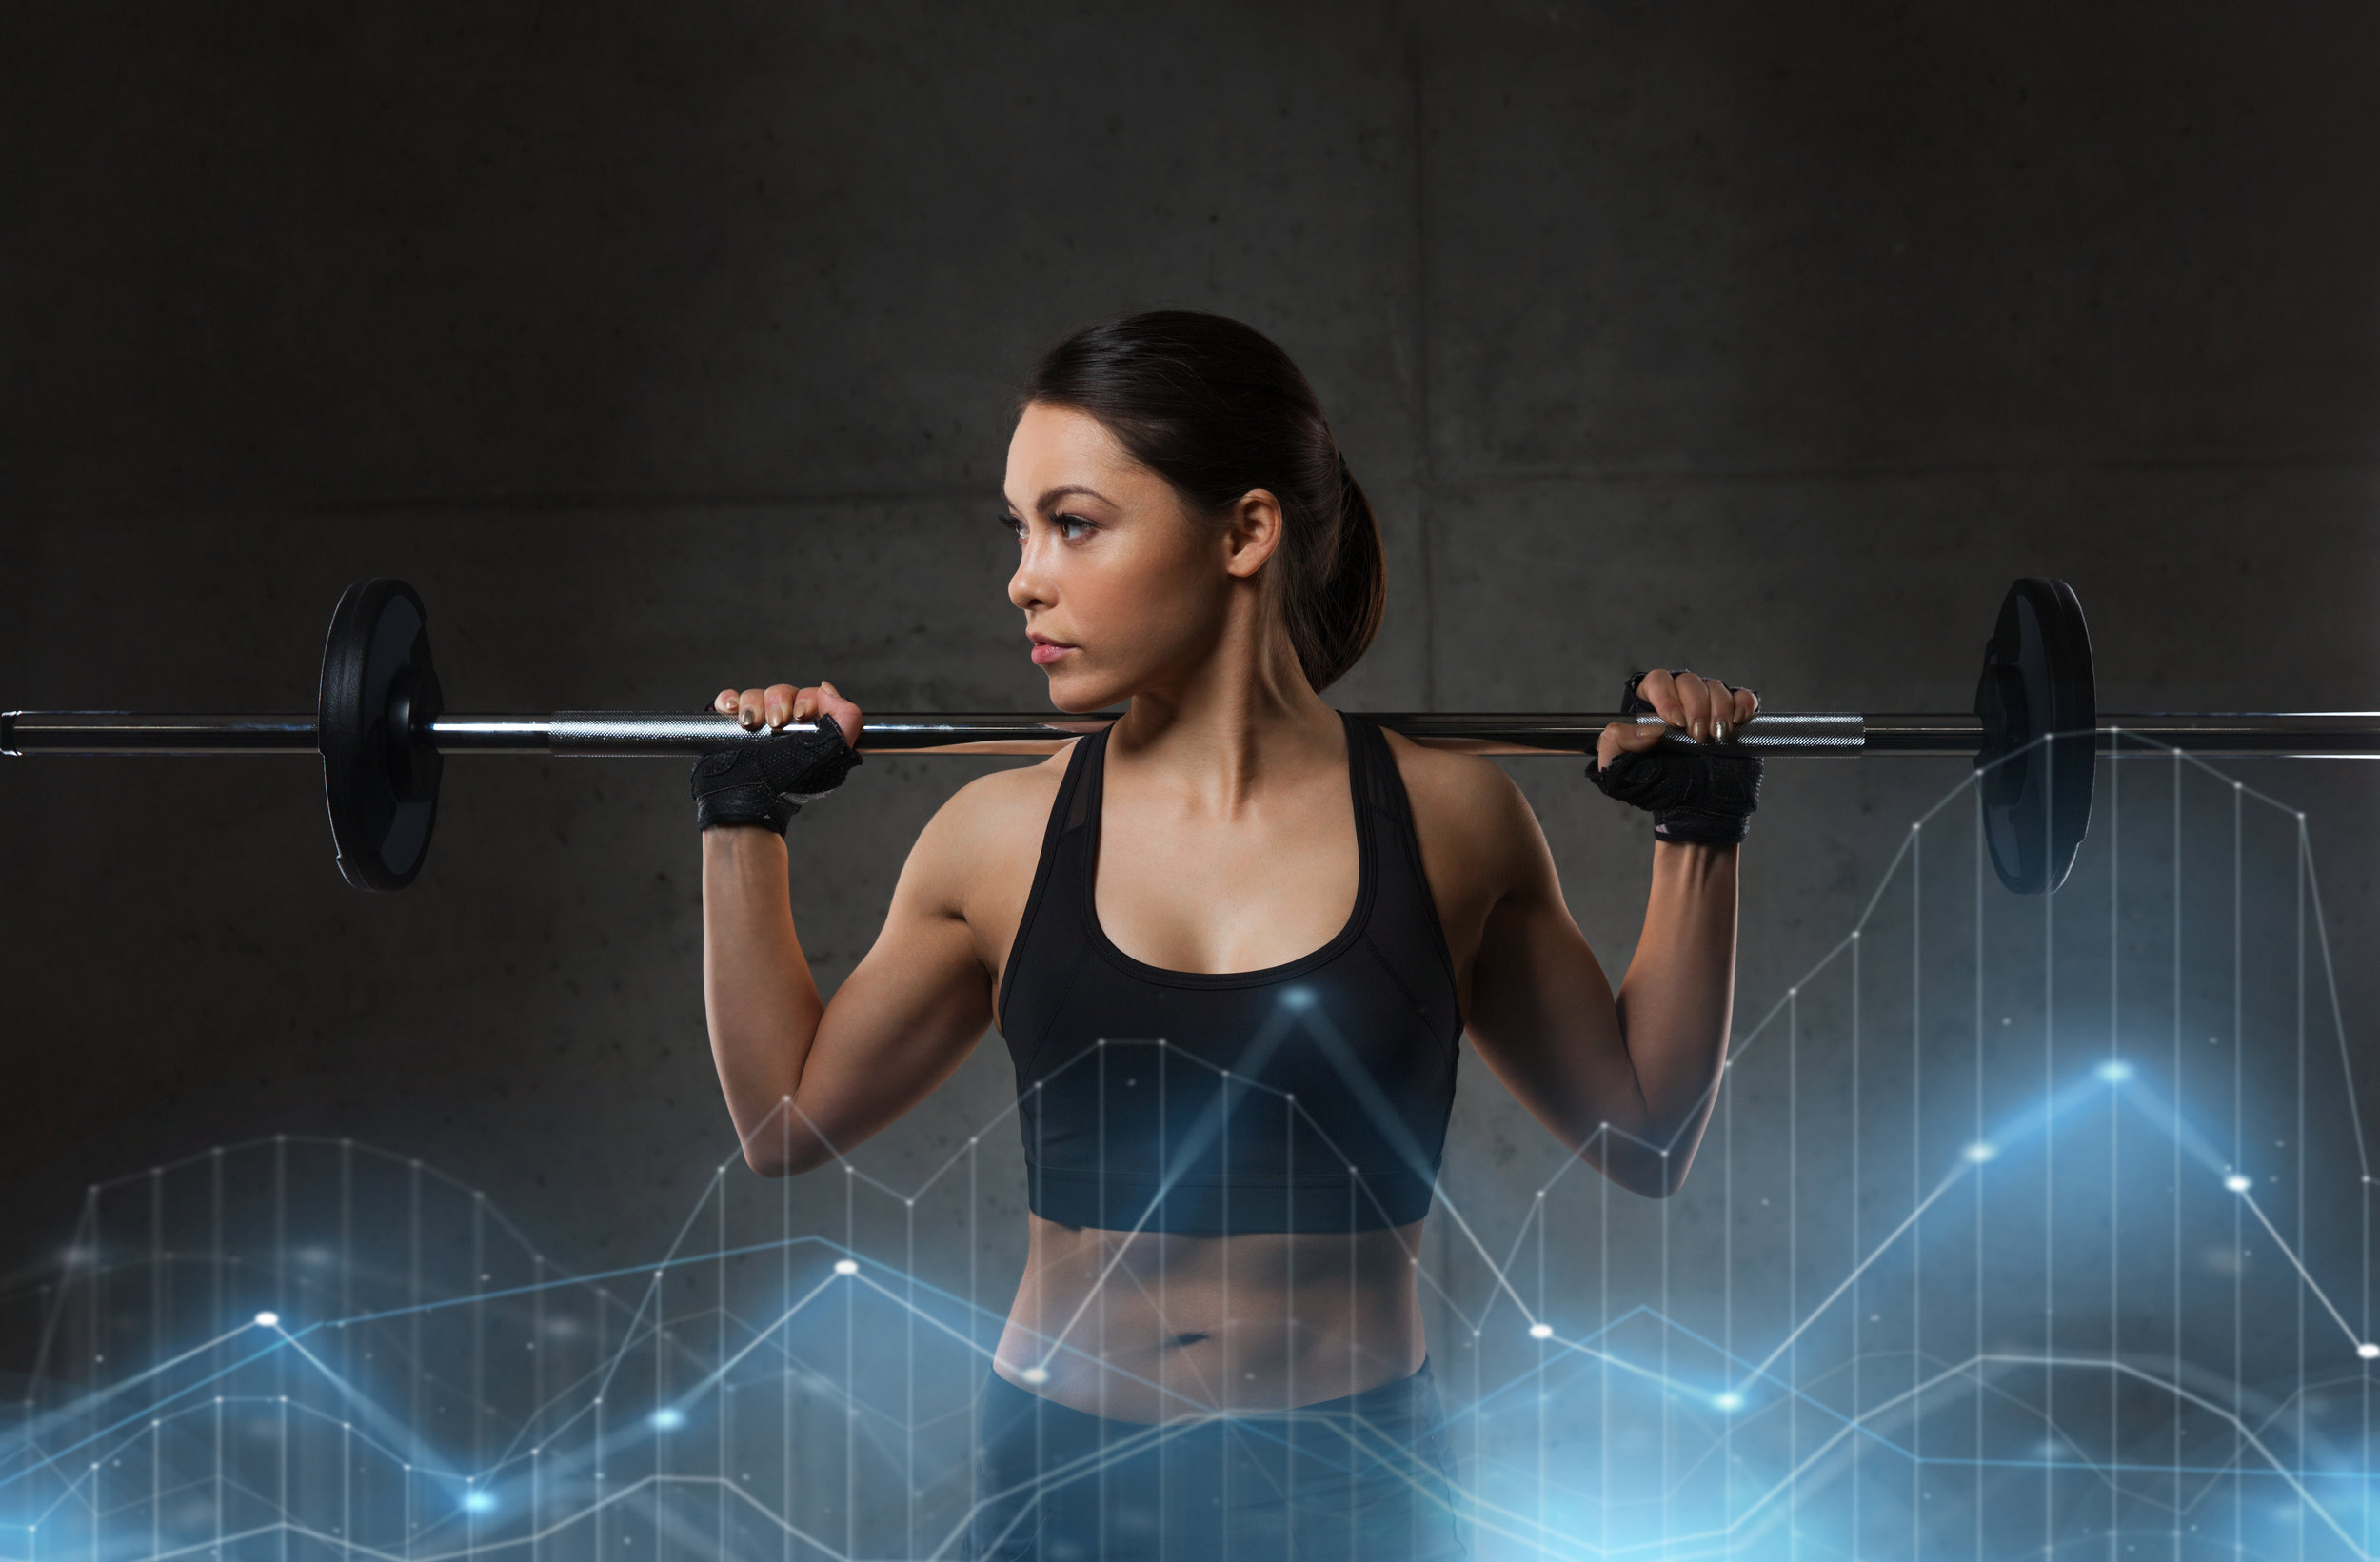 young-woman-flexing-muscles-with-barbell-in-gym-PNEZ2UA.jpg